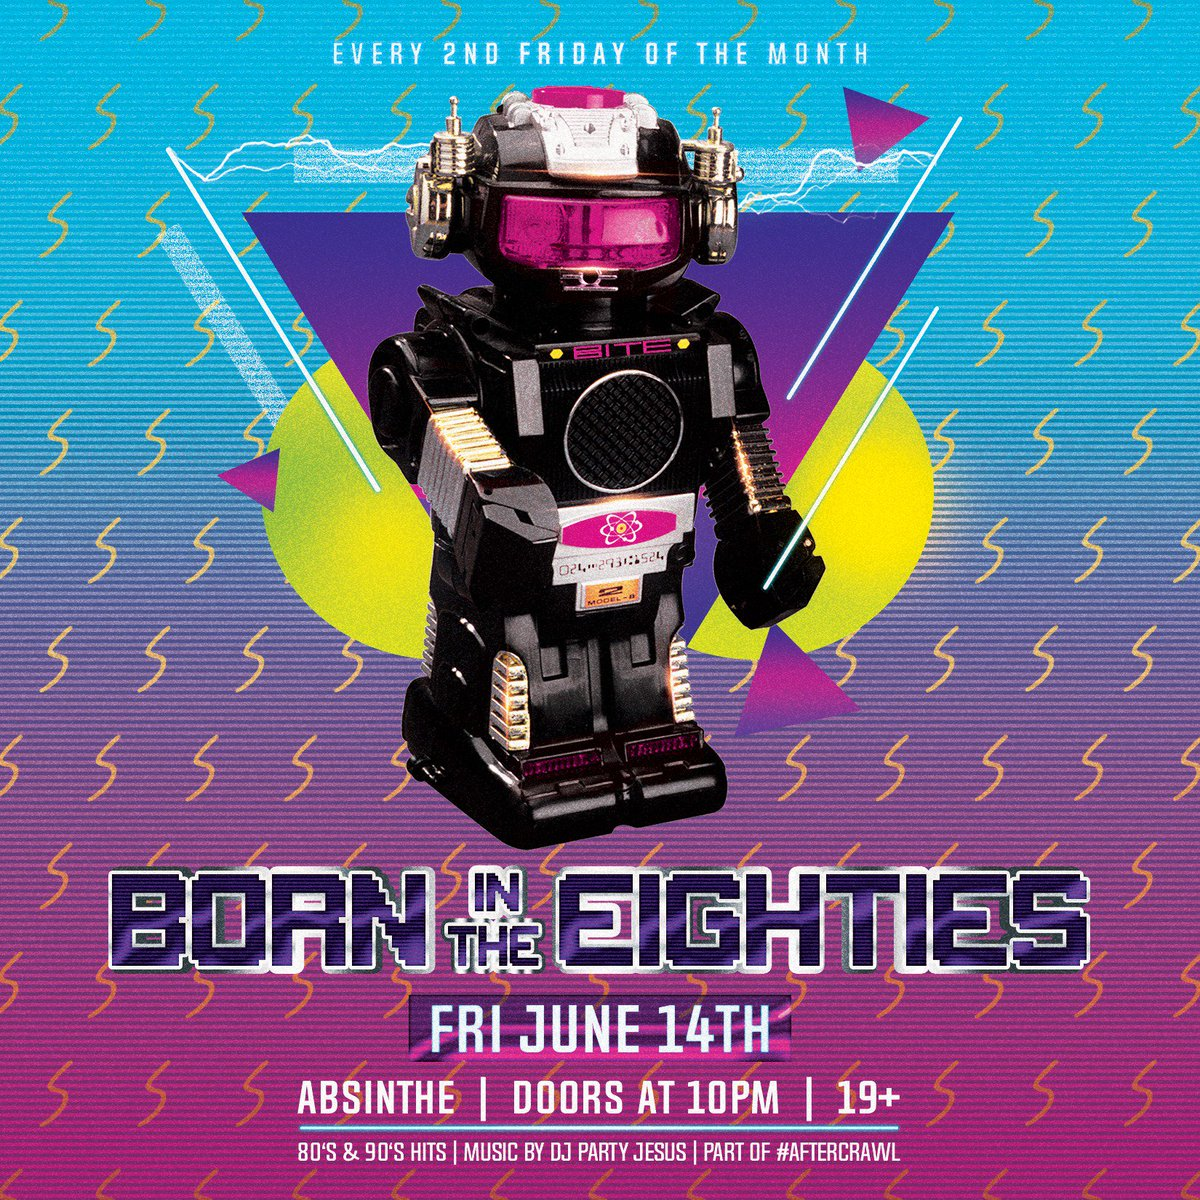 TONIGHT! Hop into the wayback playback machine and join us for our monthly #aftercrawl with your fave 80's and 90's cover band BORN IN THE EIGHTIES. Music and visuals as always by DJ PARTY JESUS. Don't stop believin' #hamont